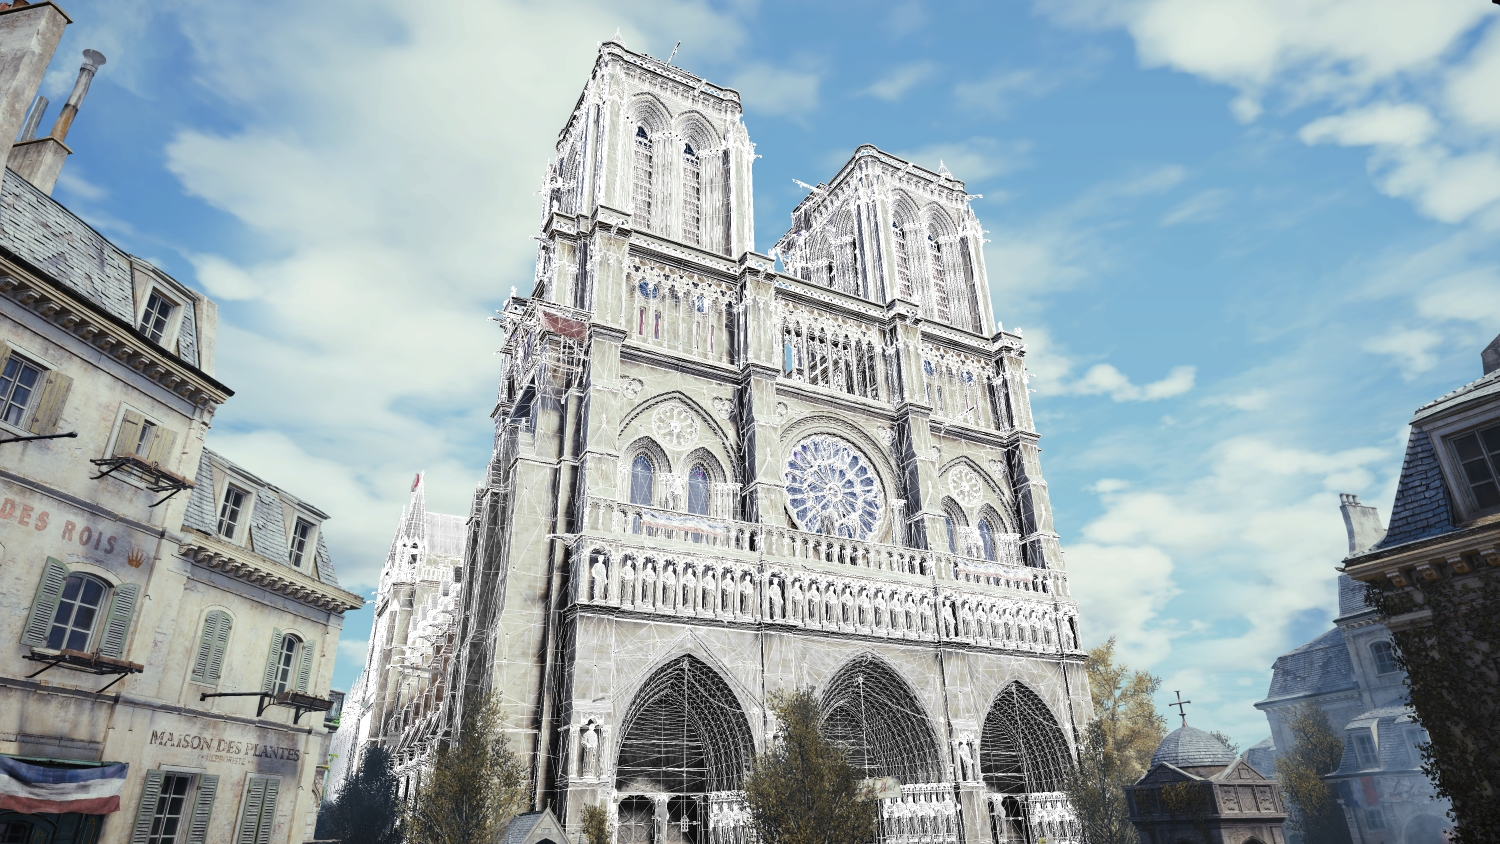 The 3D models from the game could end up being used for the real restoration